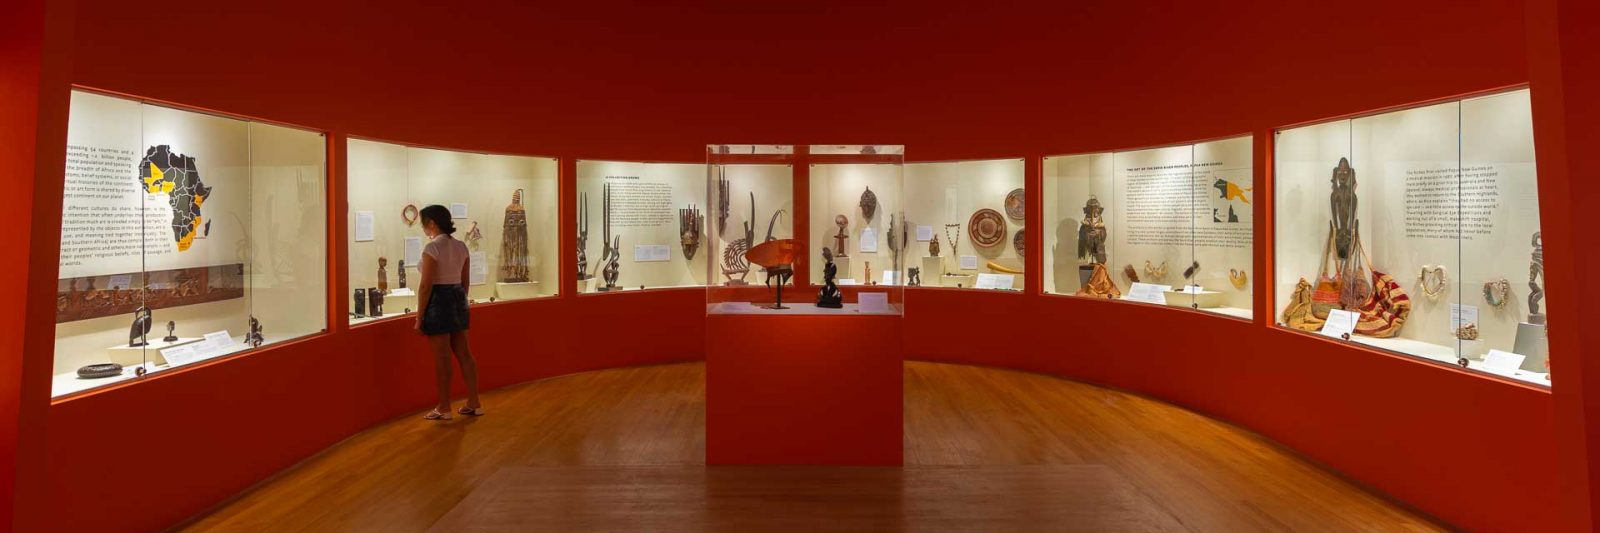 """""""Spirits: Ritual and Ceremonial African and Oceanic Art from the Dr. Alan and Linda Rich Collection,"""" installed in a new permanent gallery at Polk Museum of Art."""